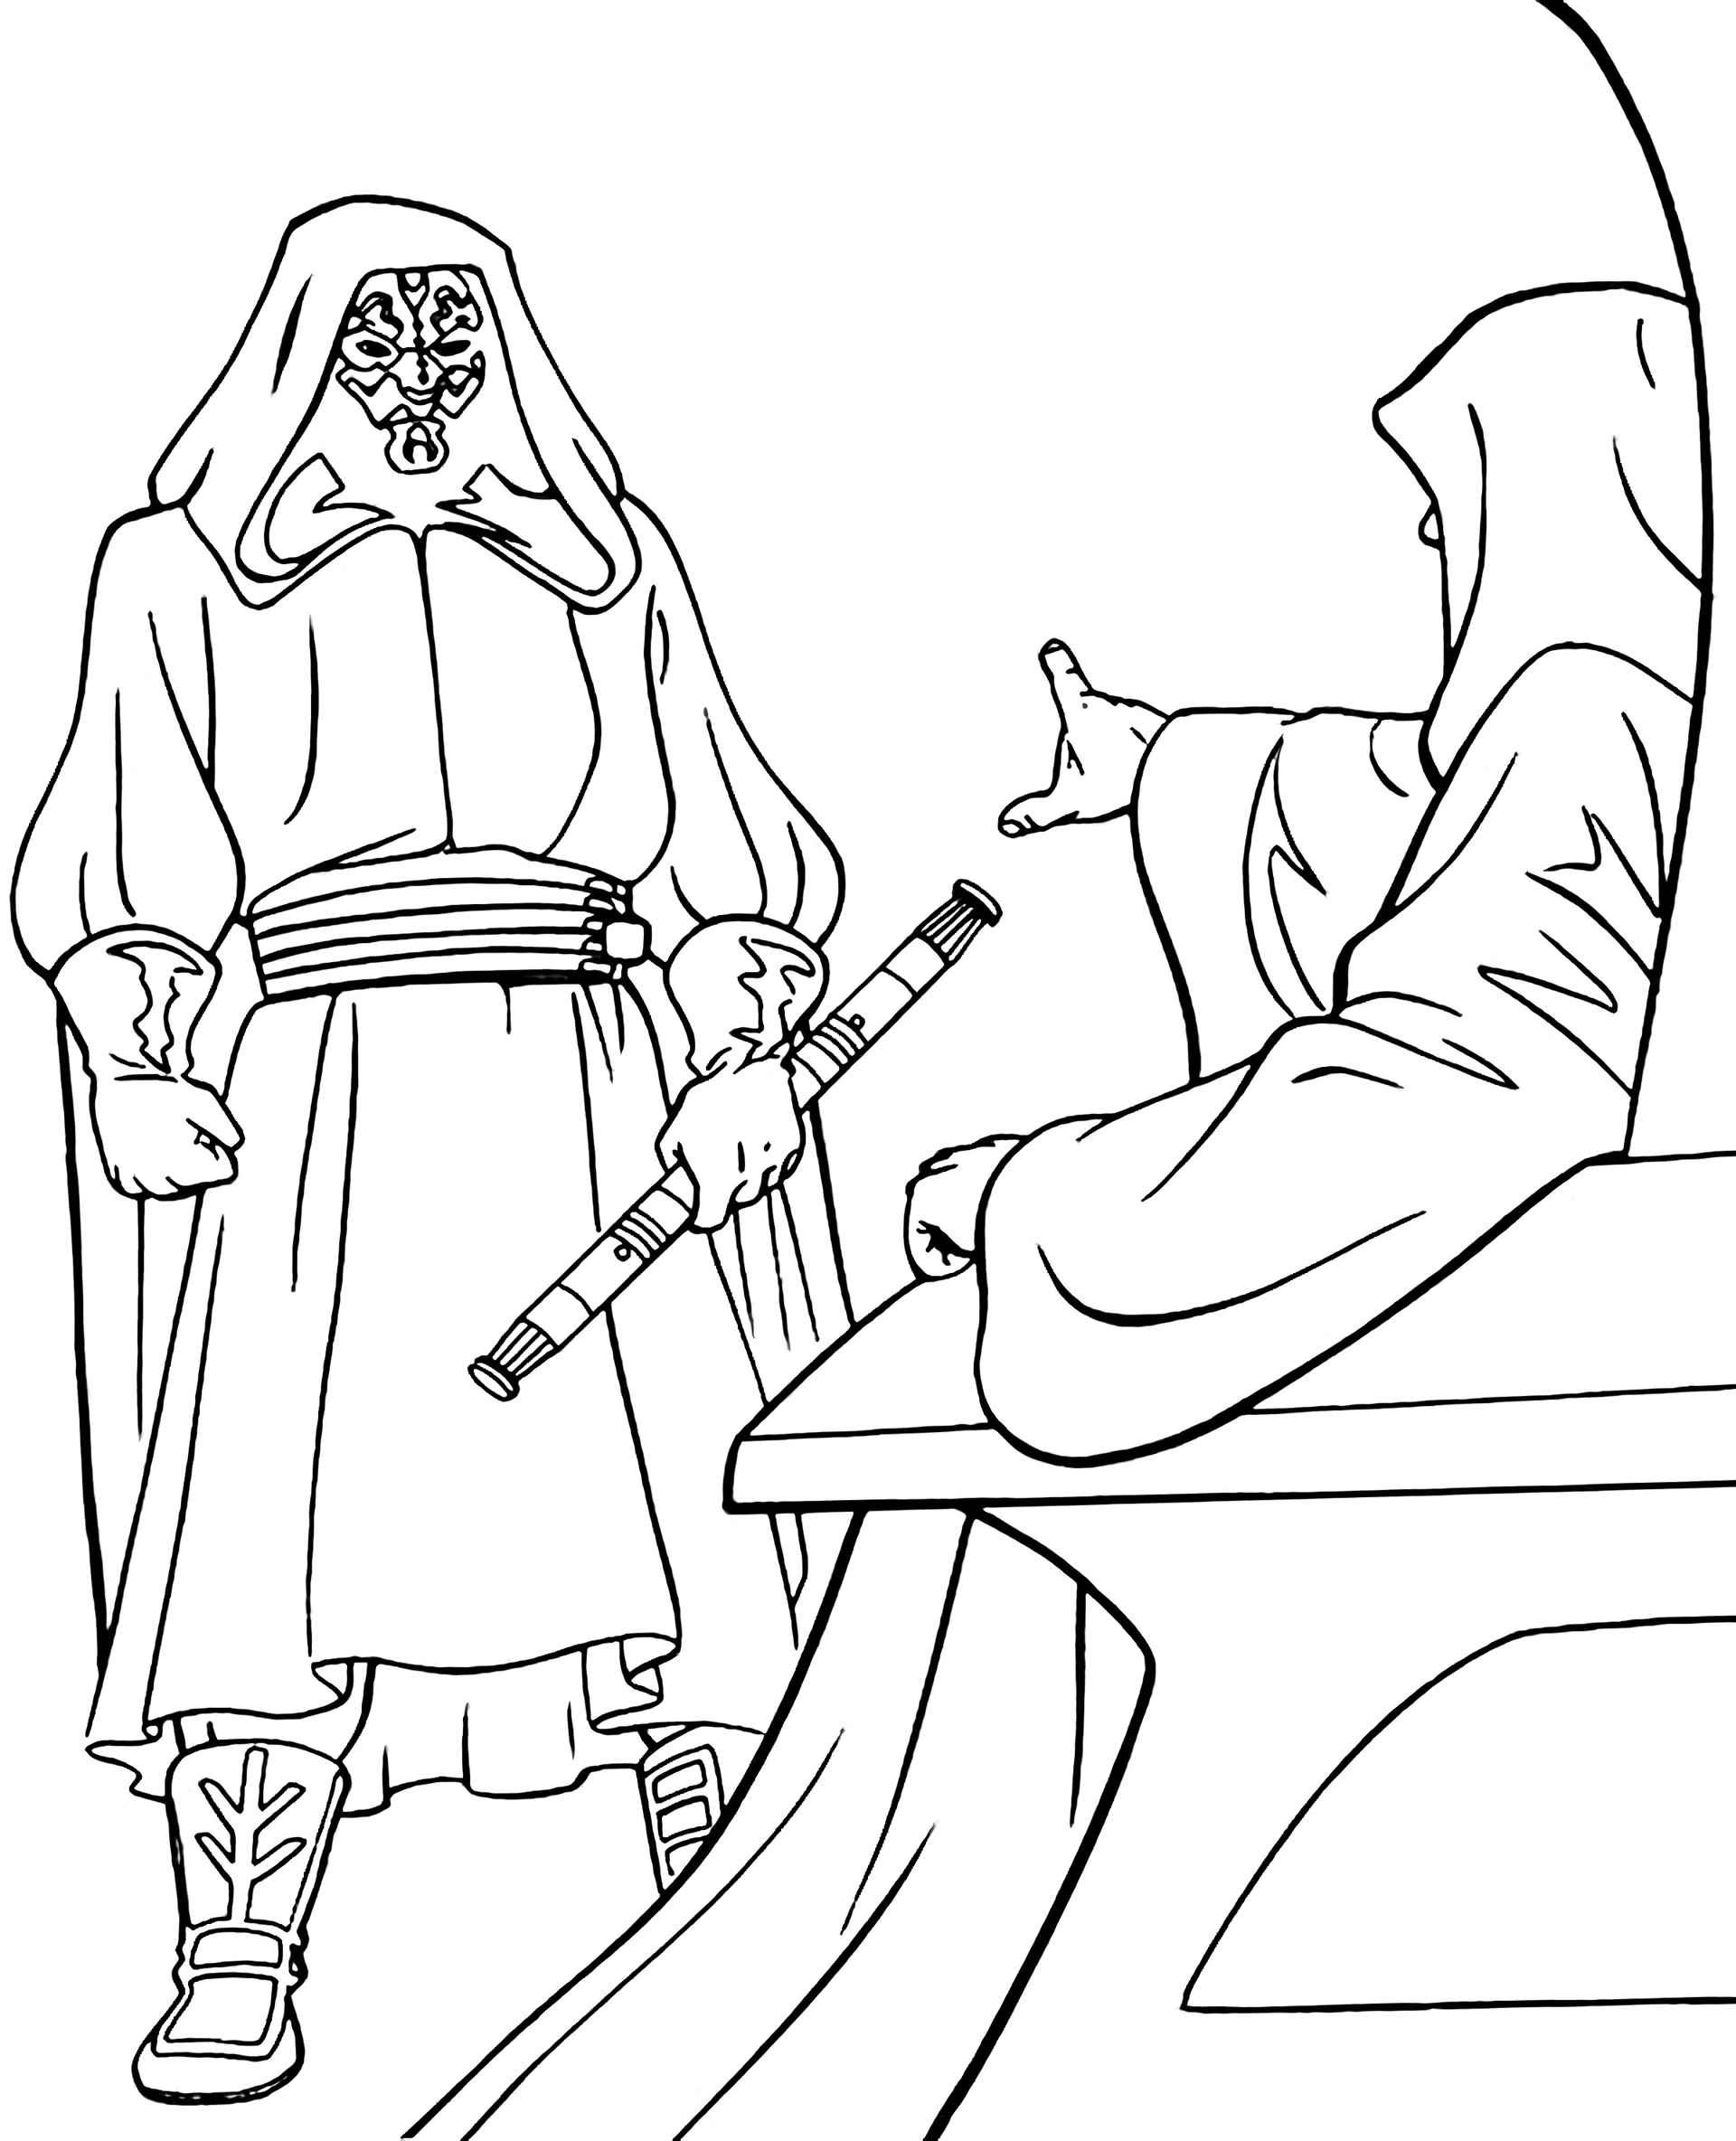 Darth Maul From Star Wars Receives A Decree Coloring Page